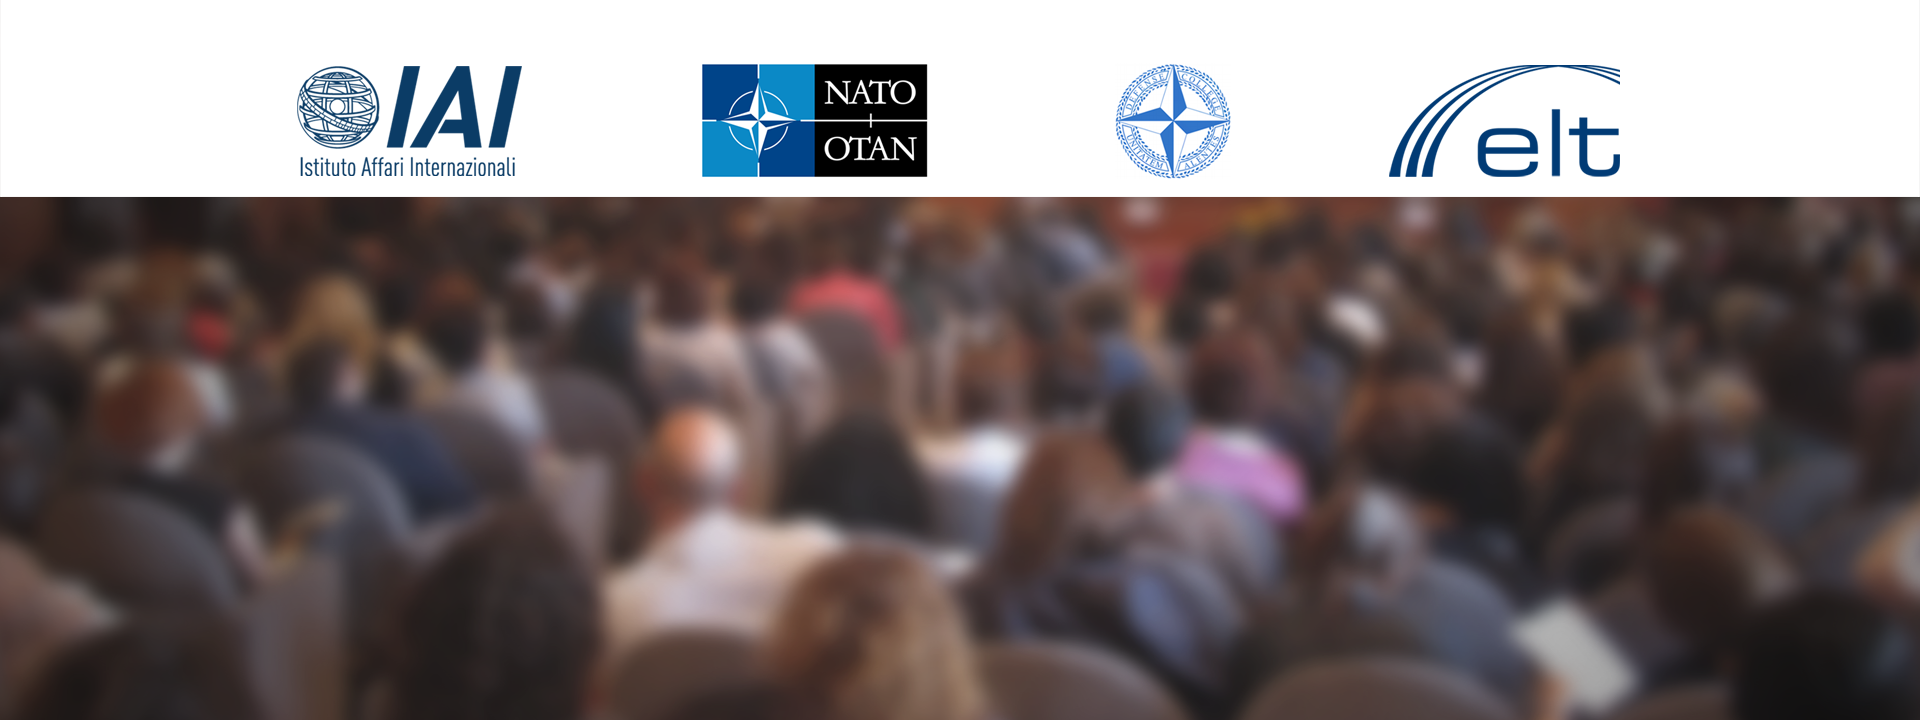 NATO and the crises south of Europe<br>Projecting stability on NATO southern neighbourhood